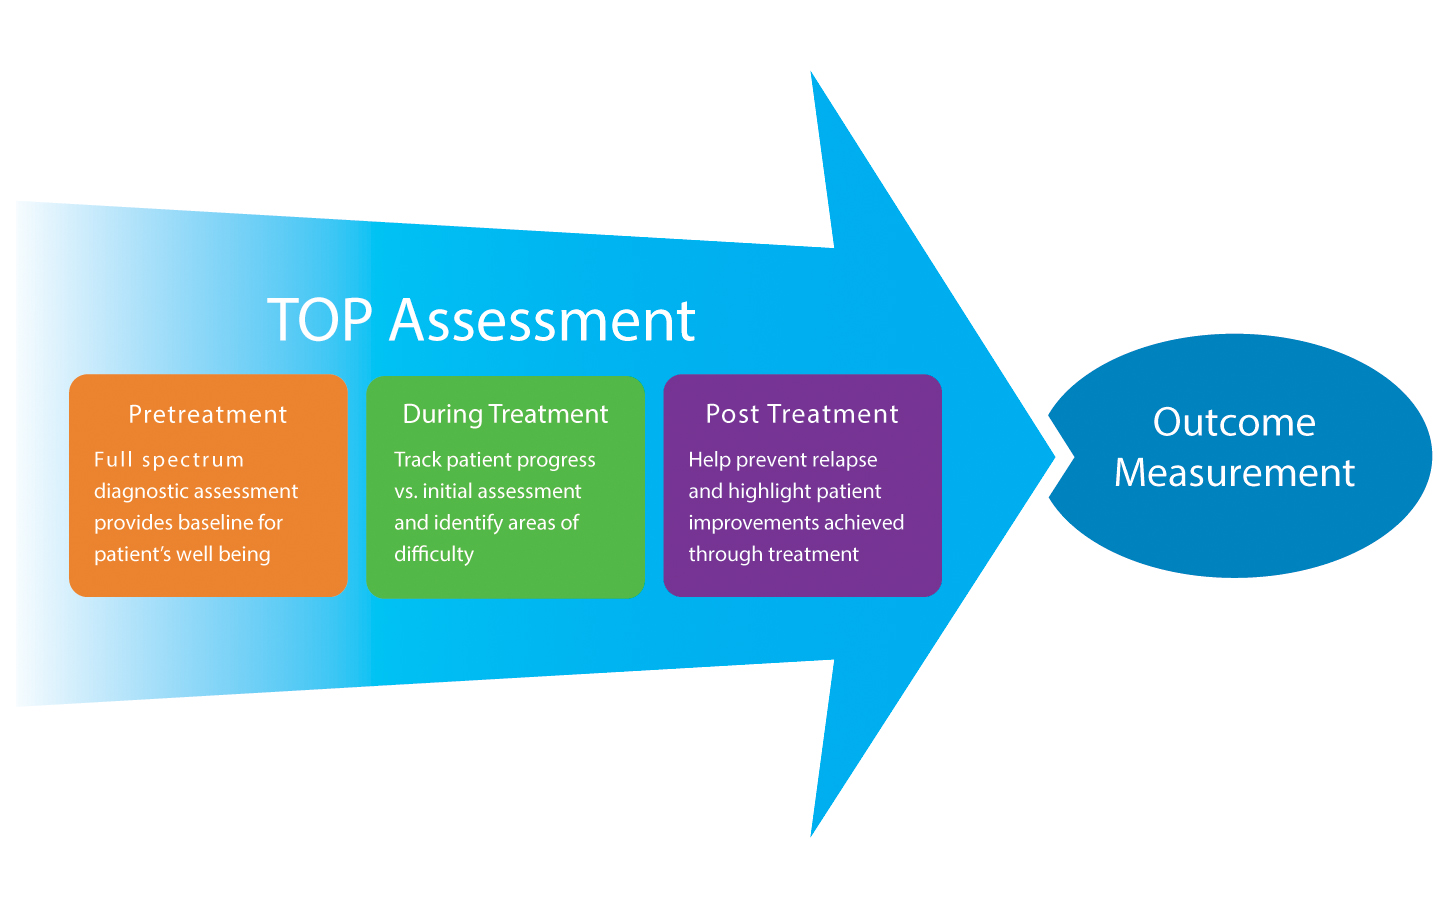 The TOP Assessment is part of all three stages of a patient's treatment